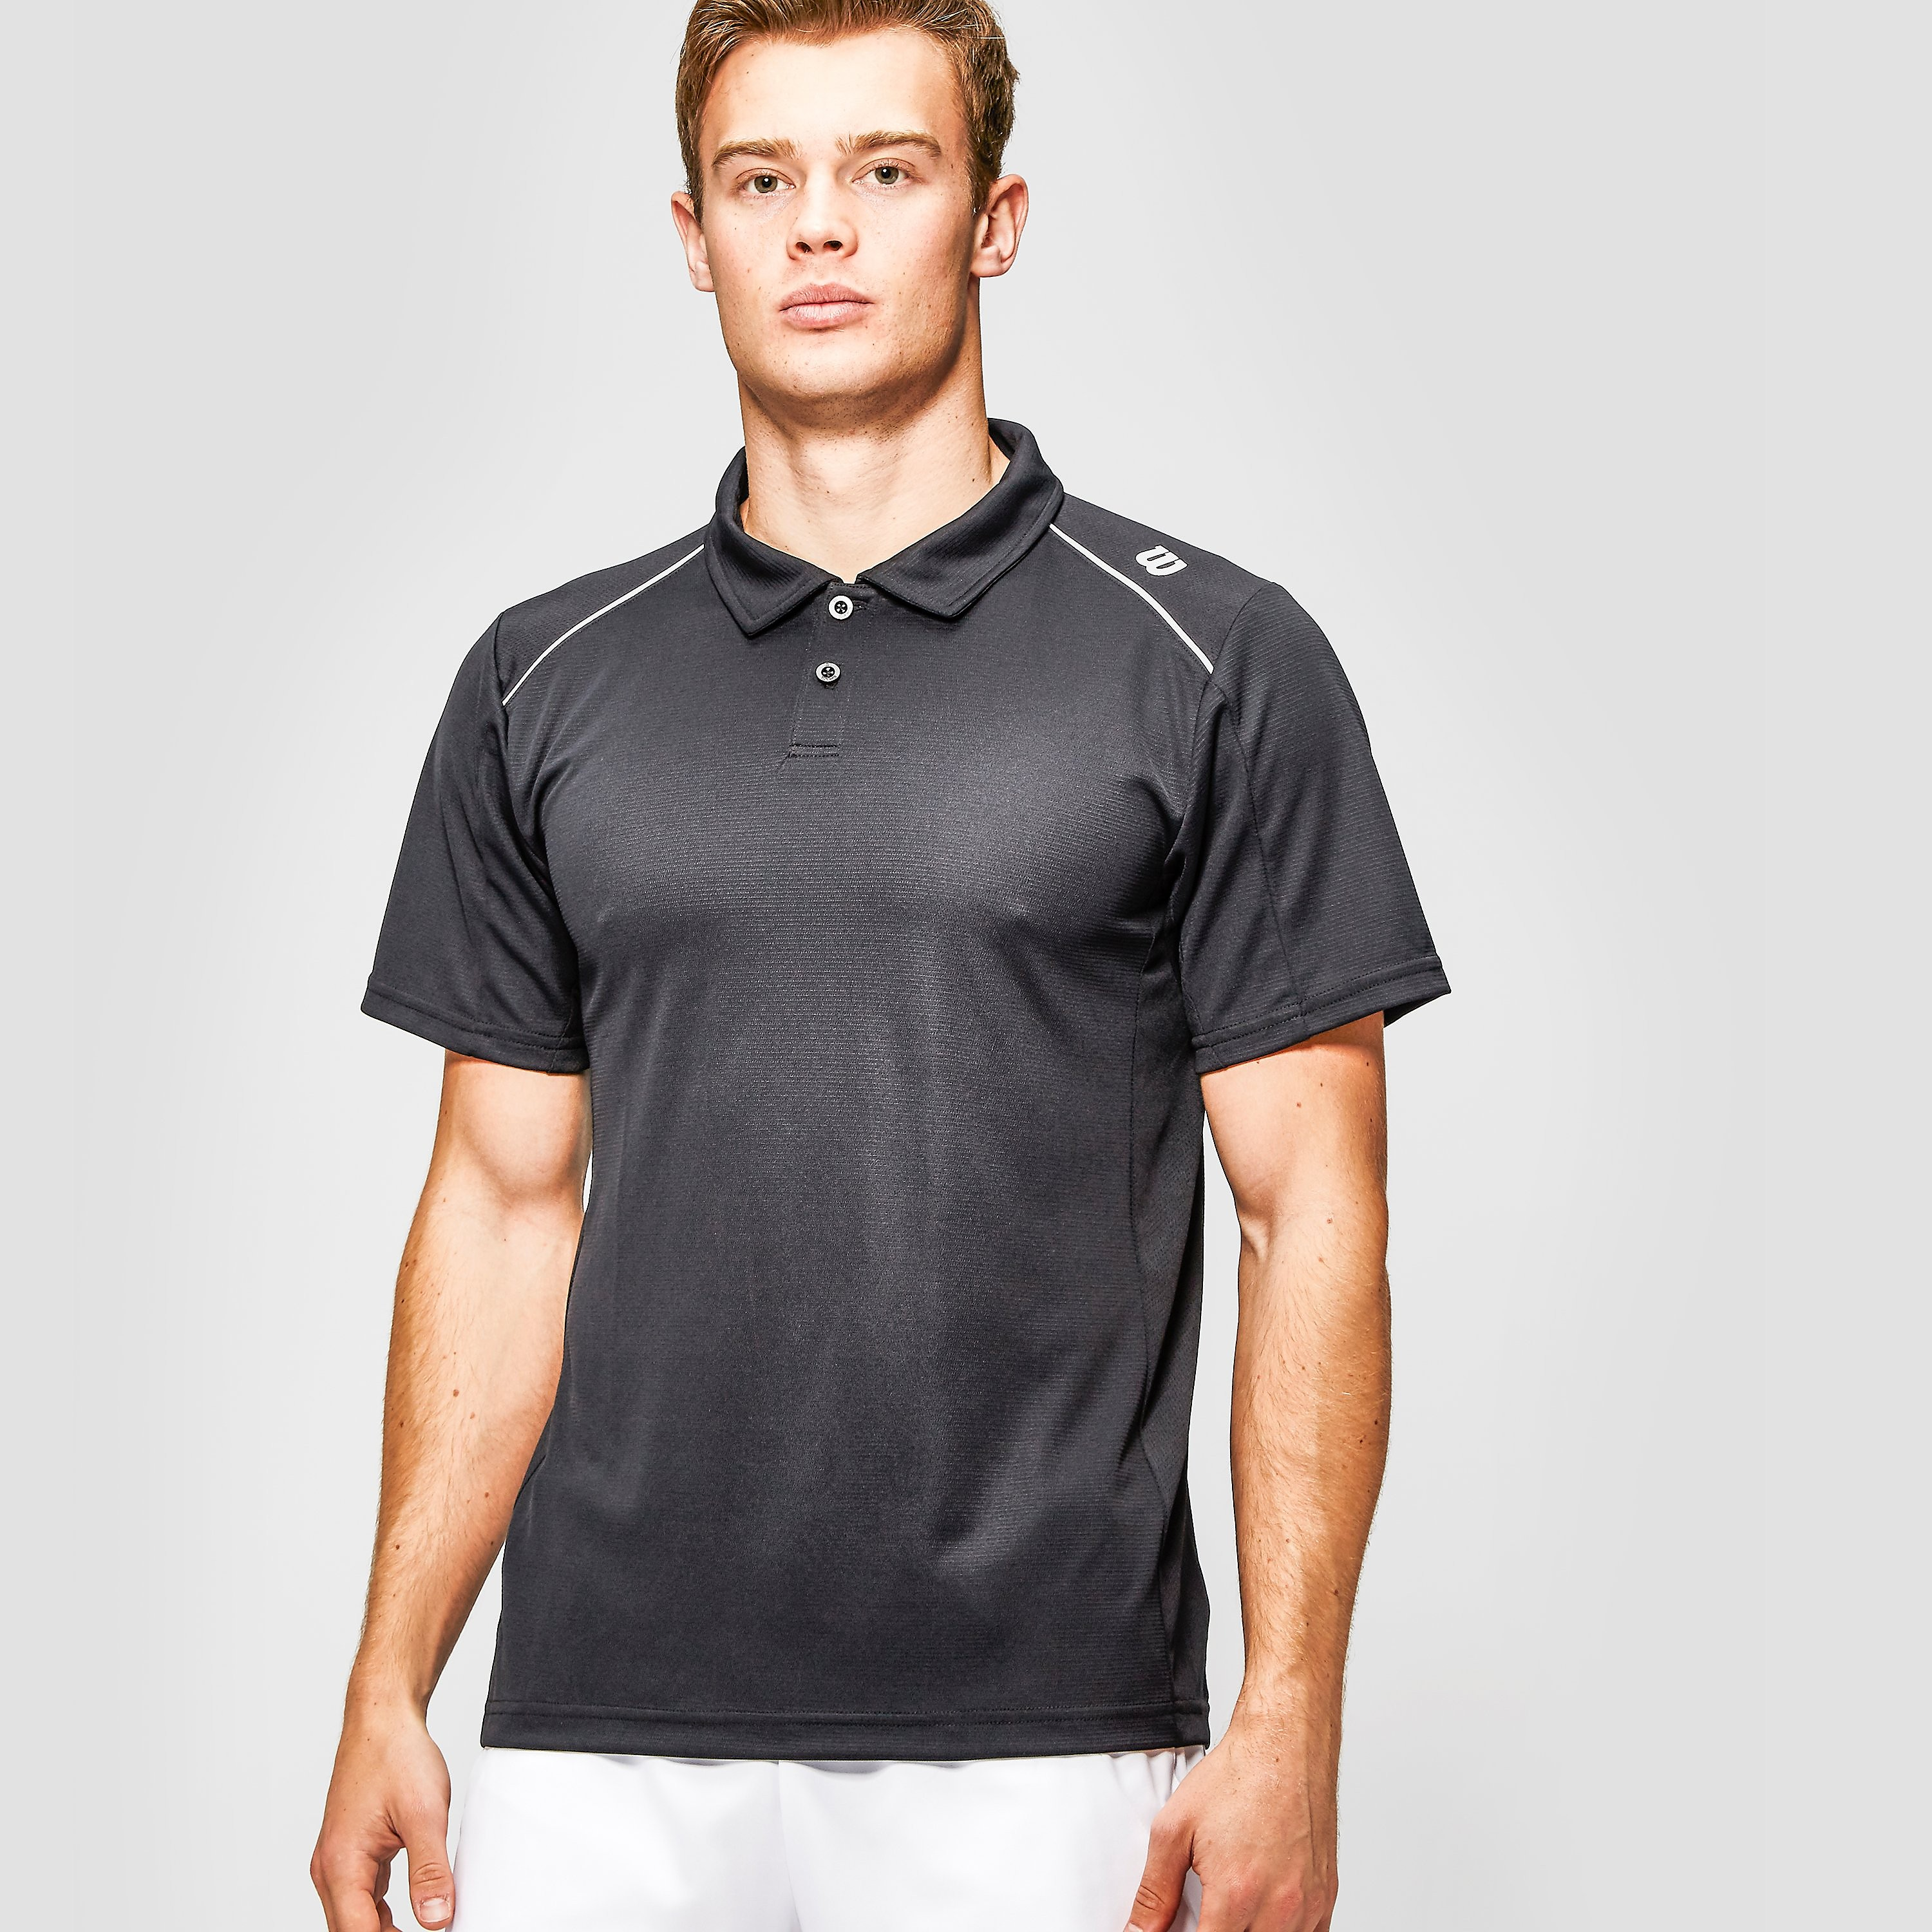 Wilson  nVision Elite Men's Polo